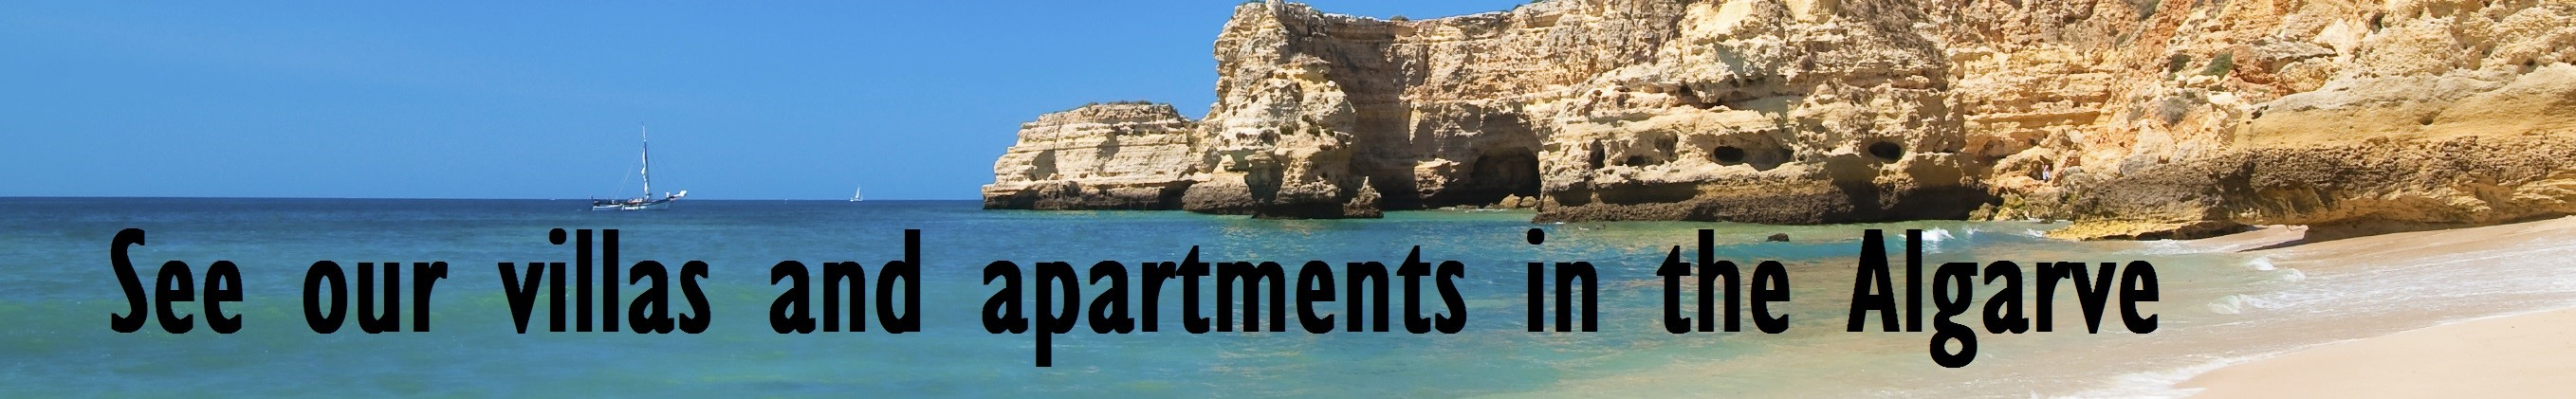 Villas and apartments in Algarve